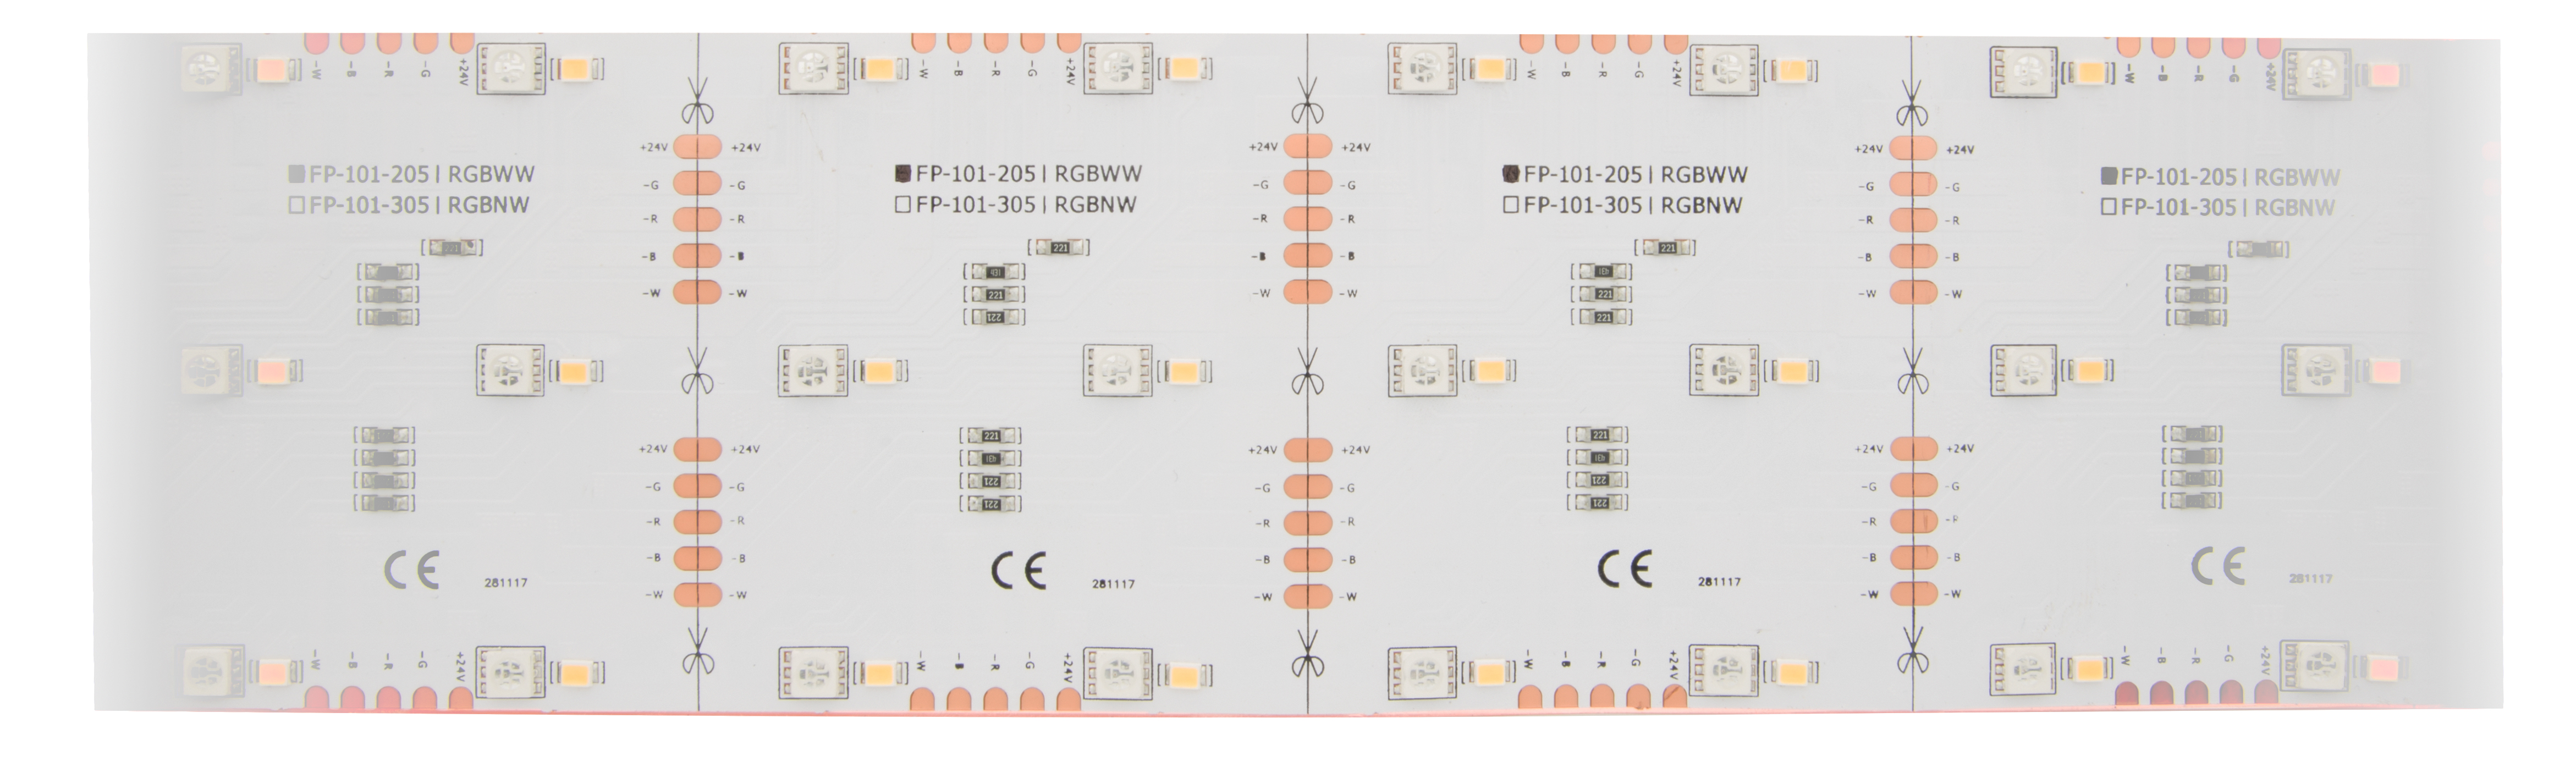 1 Stk LED Flexboard 14 RGB NW (Neutral Weiss) - IP20, CRI/RA 90+ LIFP102305